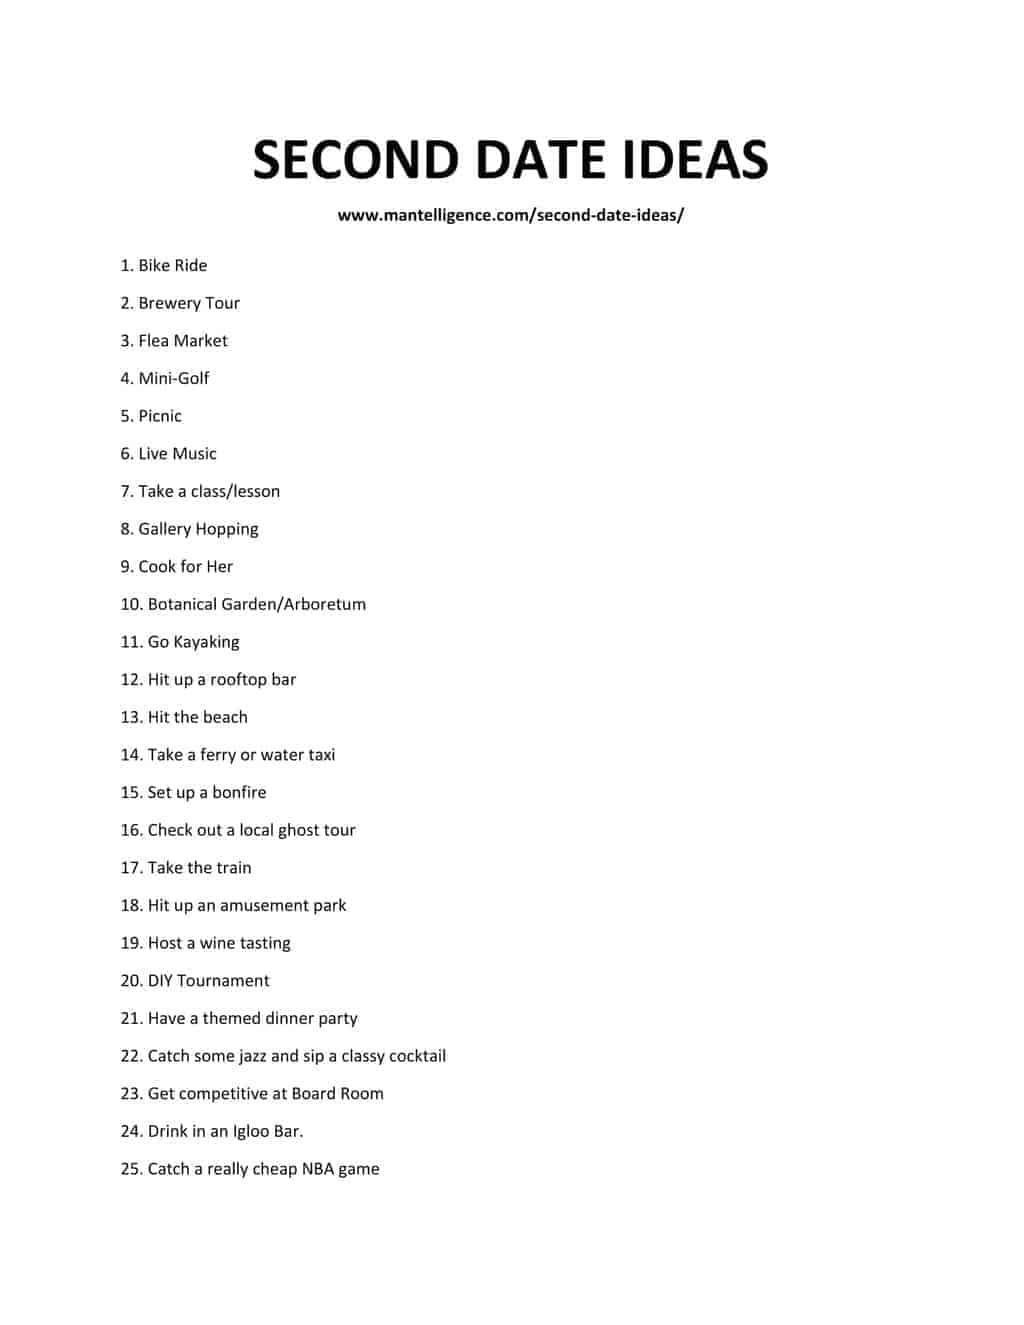 Downloadable list of SECOND DATE IDEAS